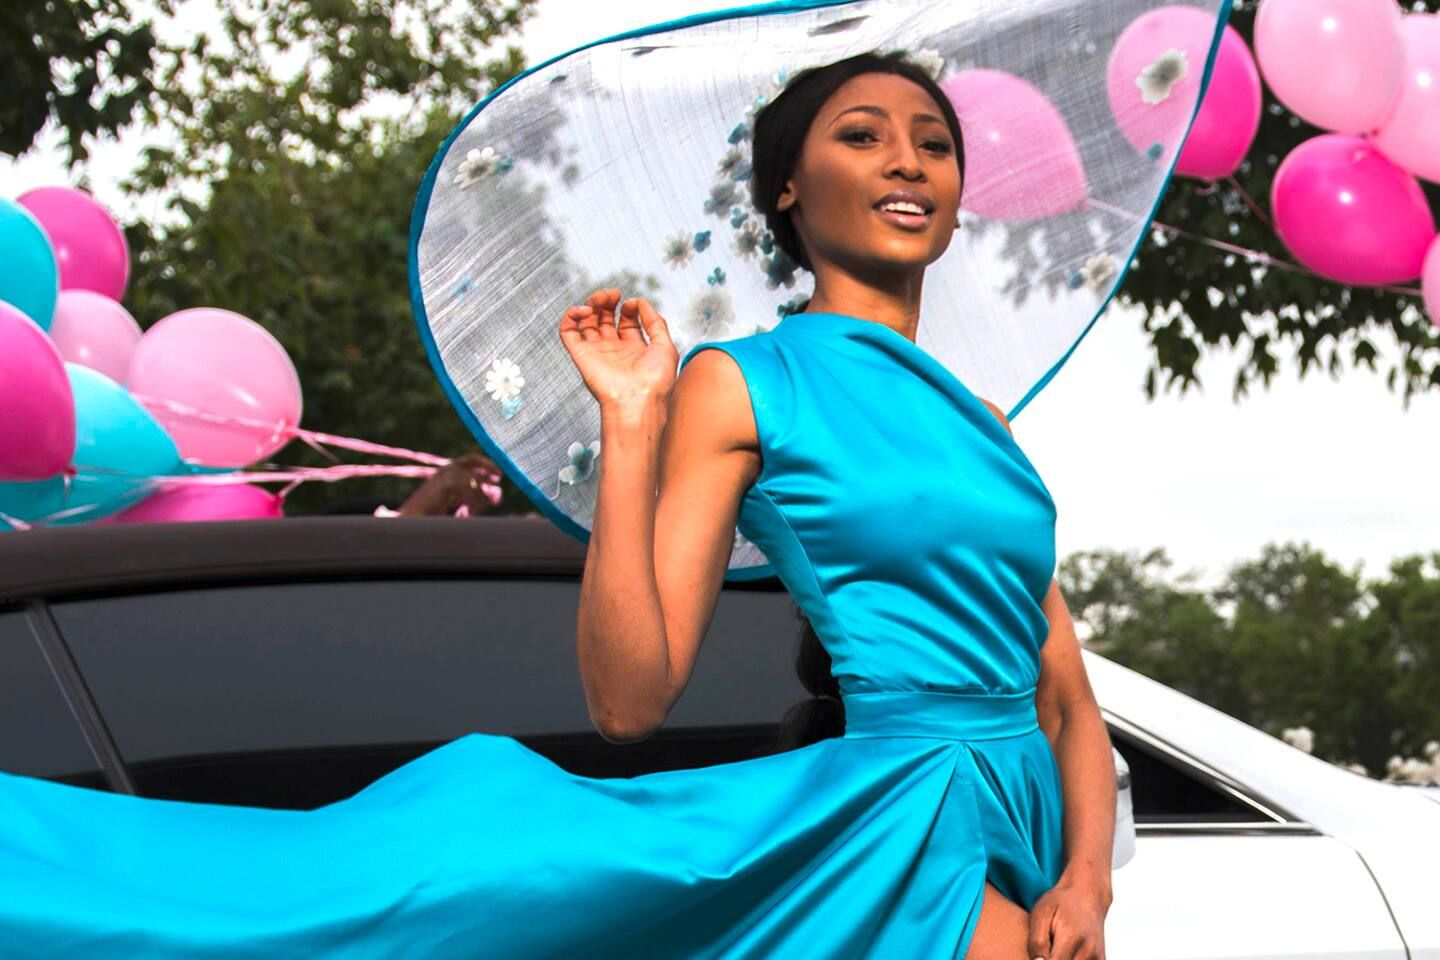 Skip lady in blue dress with pink & blue balloons